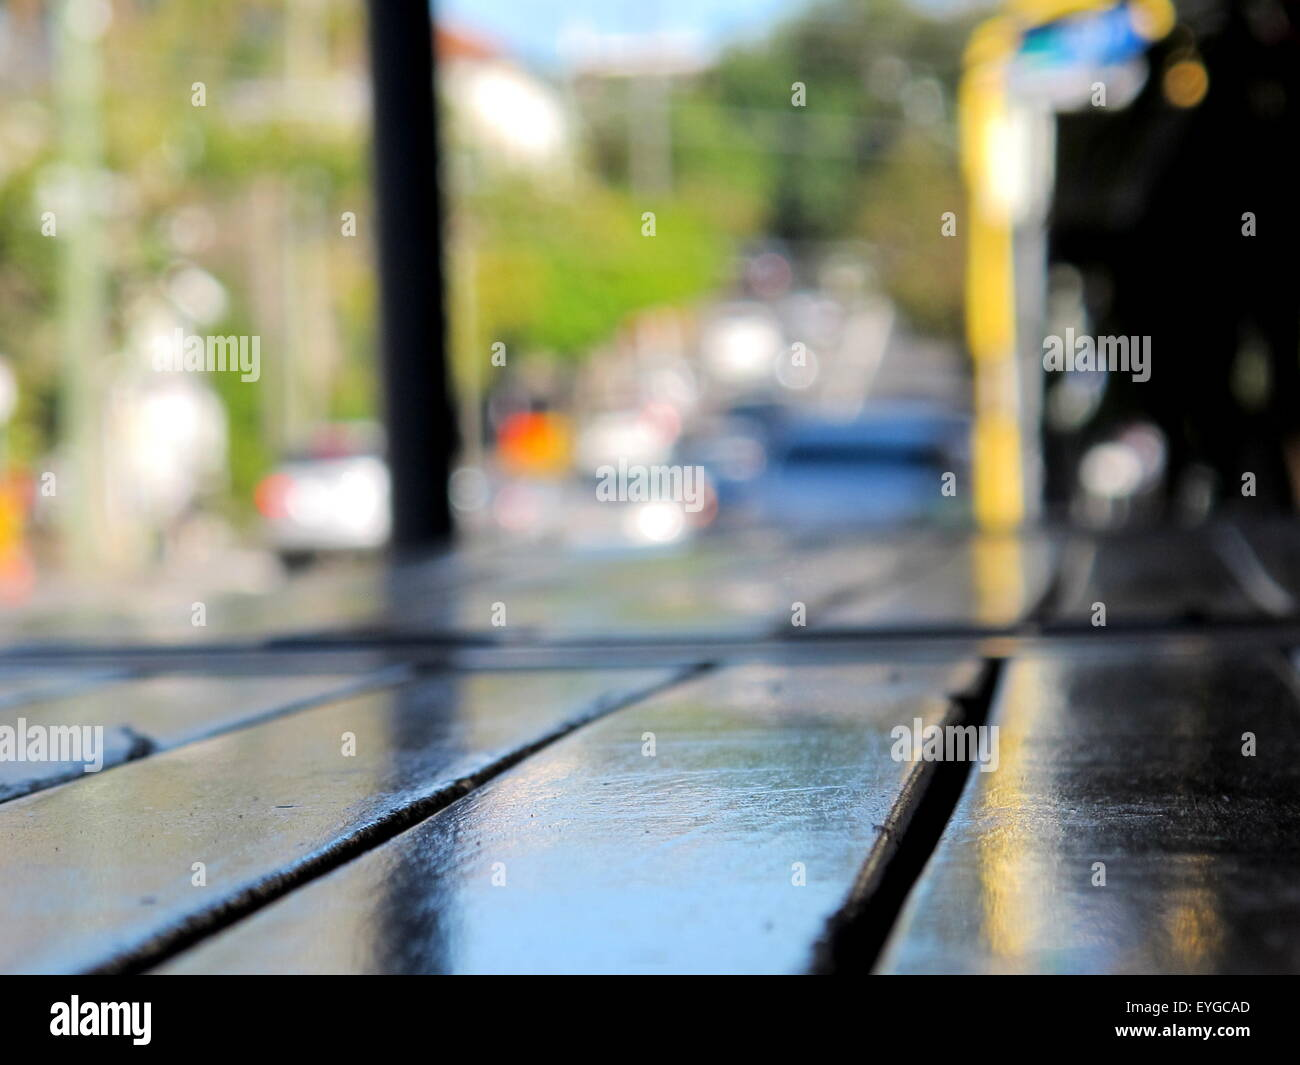 Soft Focus Street view across Table - Stock Image